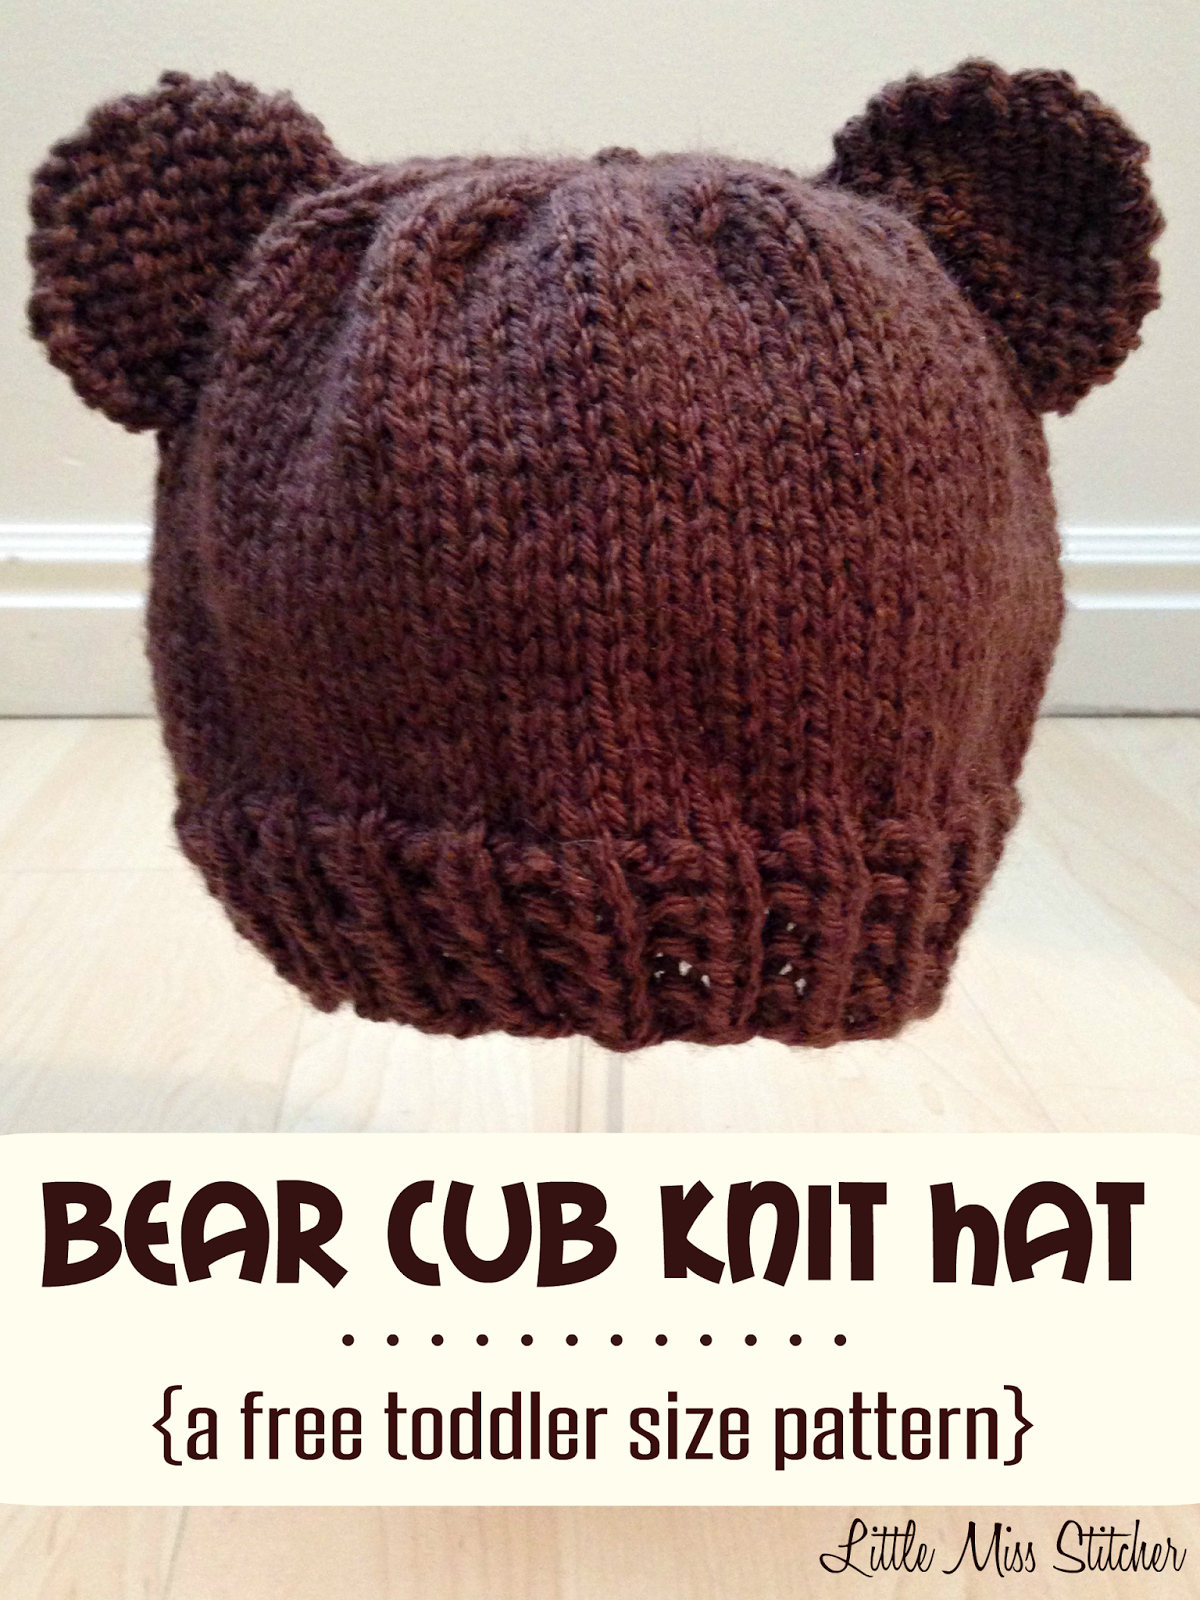 Bear Cub Knit Hat Pattern For Toddlers - thinking I could do this in